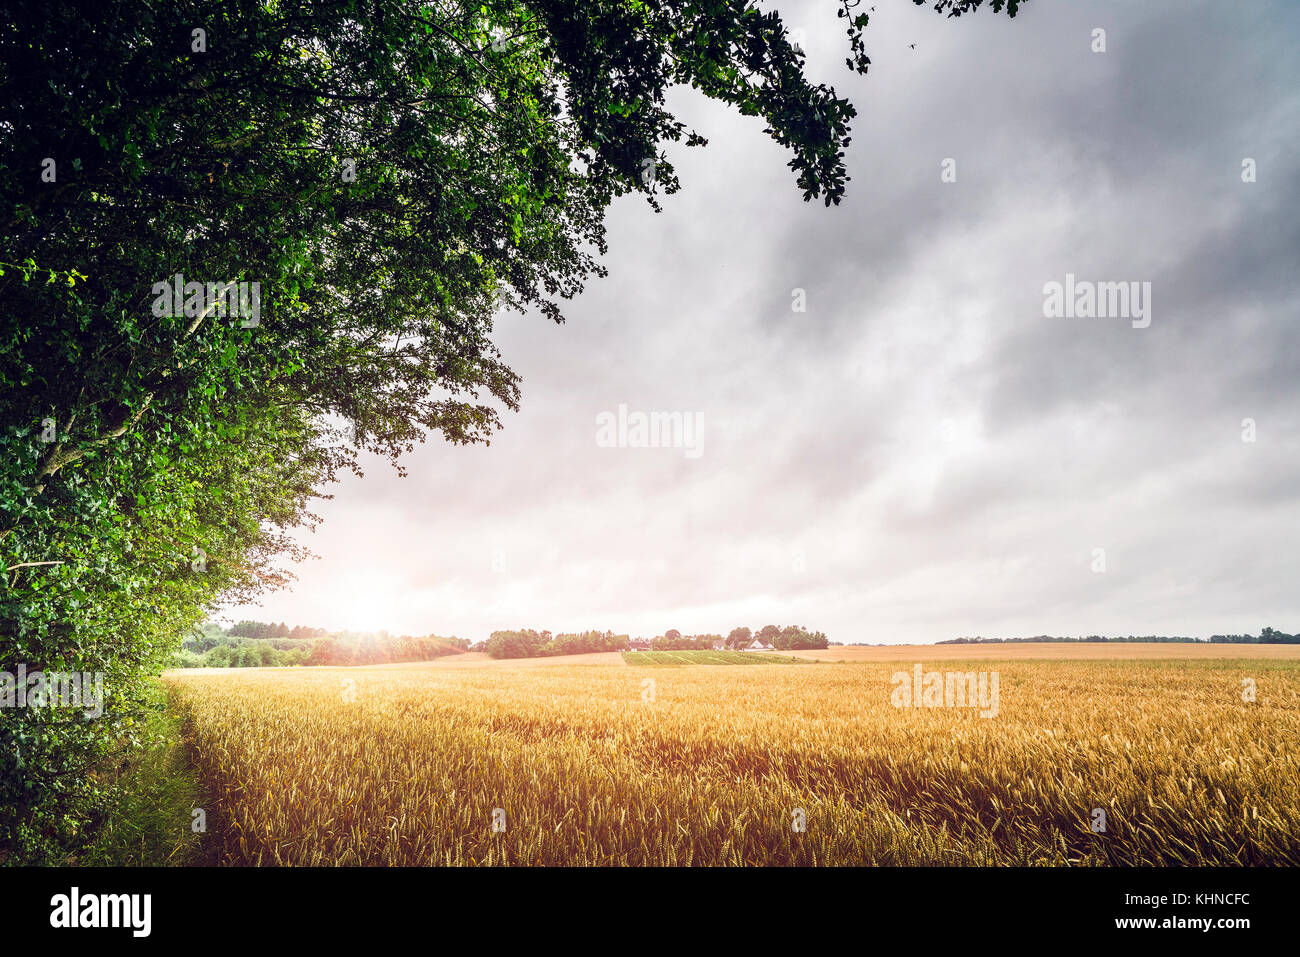 Countryside sunset on a field landscape with golden grain and cloudy sky - Stock Image